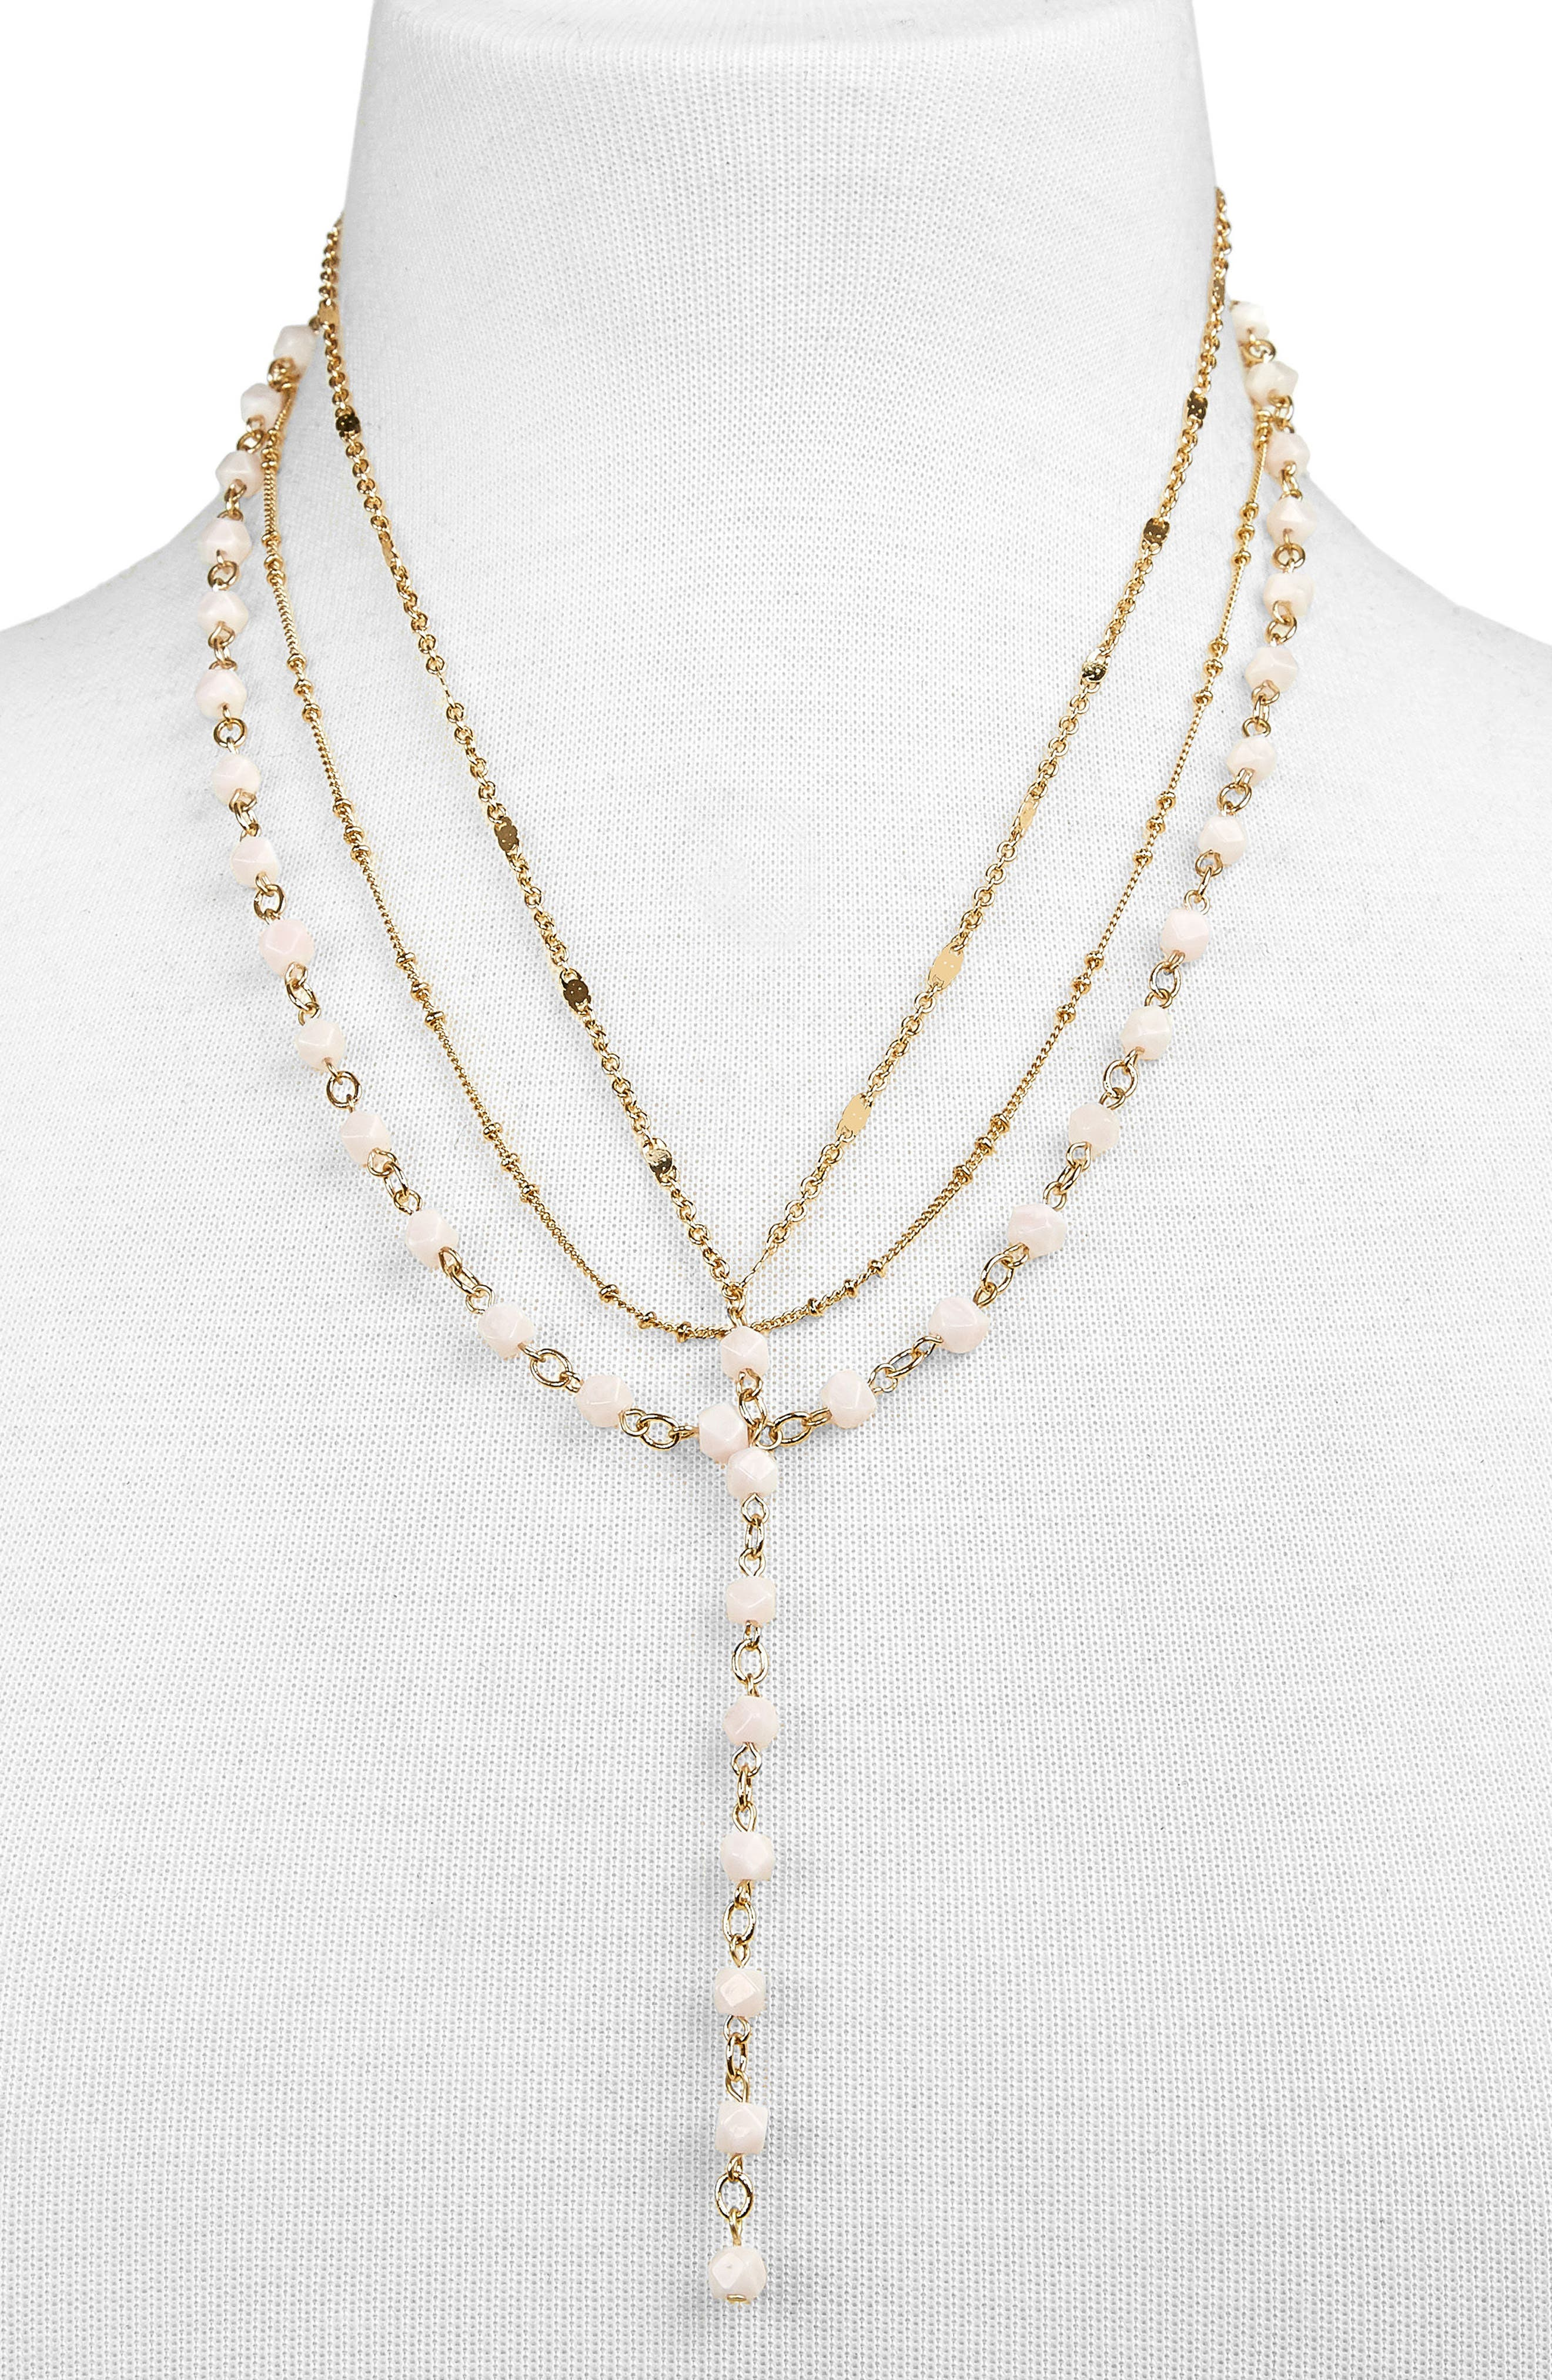 Odelia Layered Y-Chain Necklace,                             Alternate thumbnail 2, color,                             689